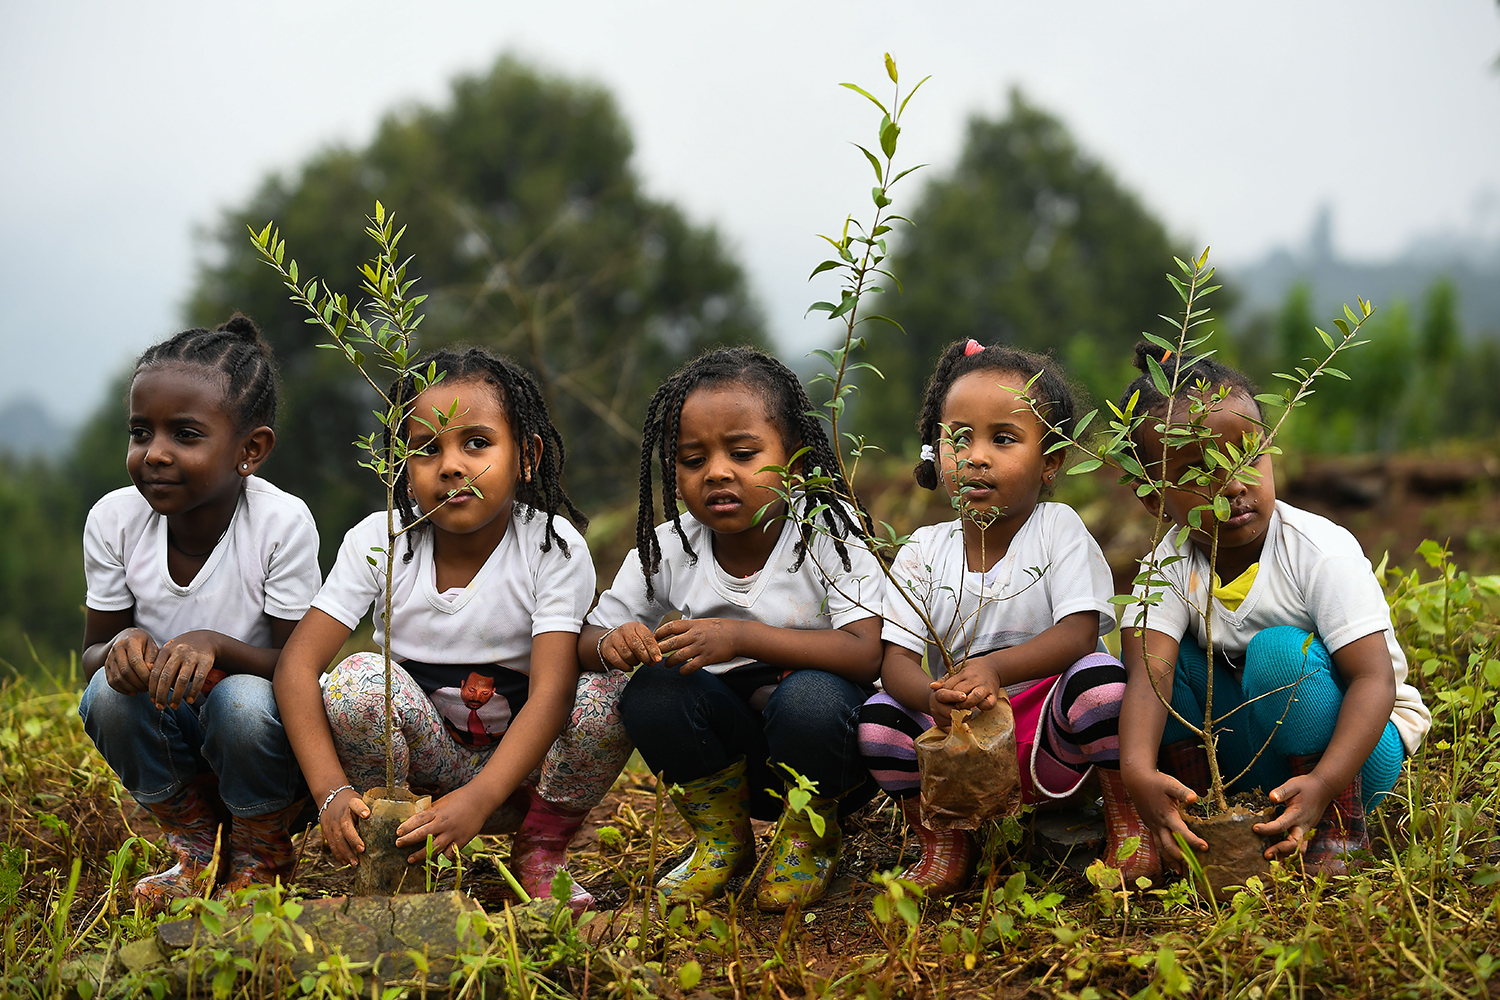 Ethiopian girls take part in a national tree-planting drive in the capital Addis Ababa on July 28. Ethiopia says it plans to plant 4 billion trees by October as part of a global movement to restore forests and help fight climate change. MICHAEL TEWELDE/AFP/Getty Images